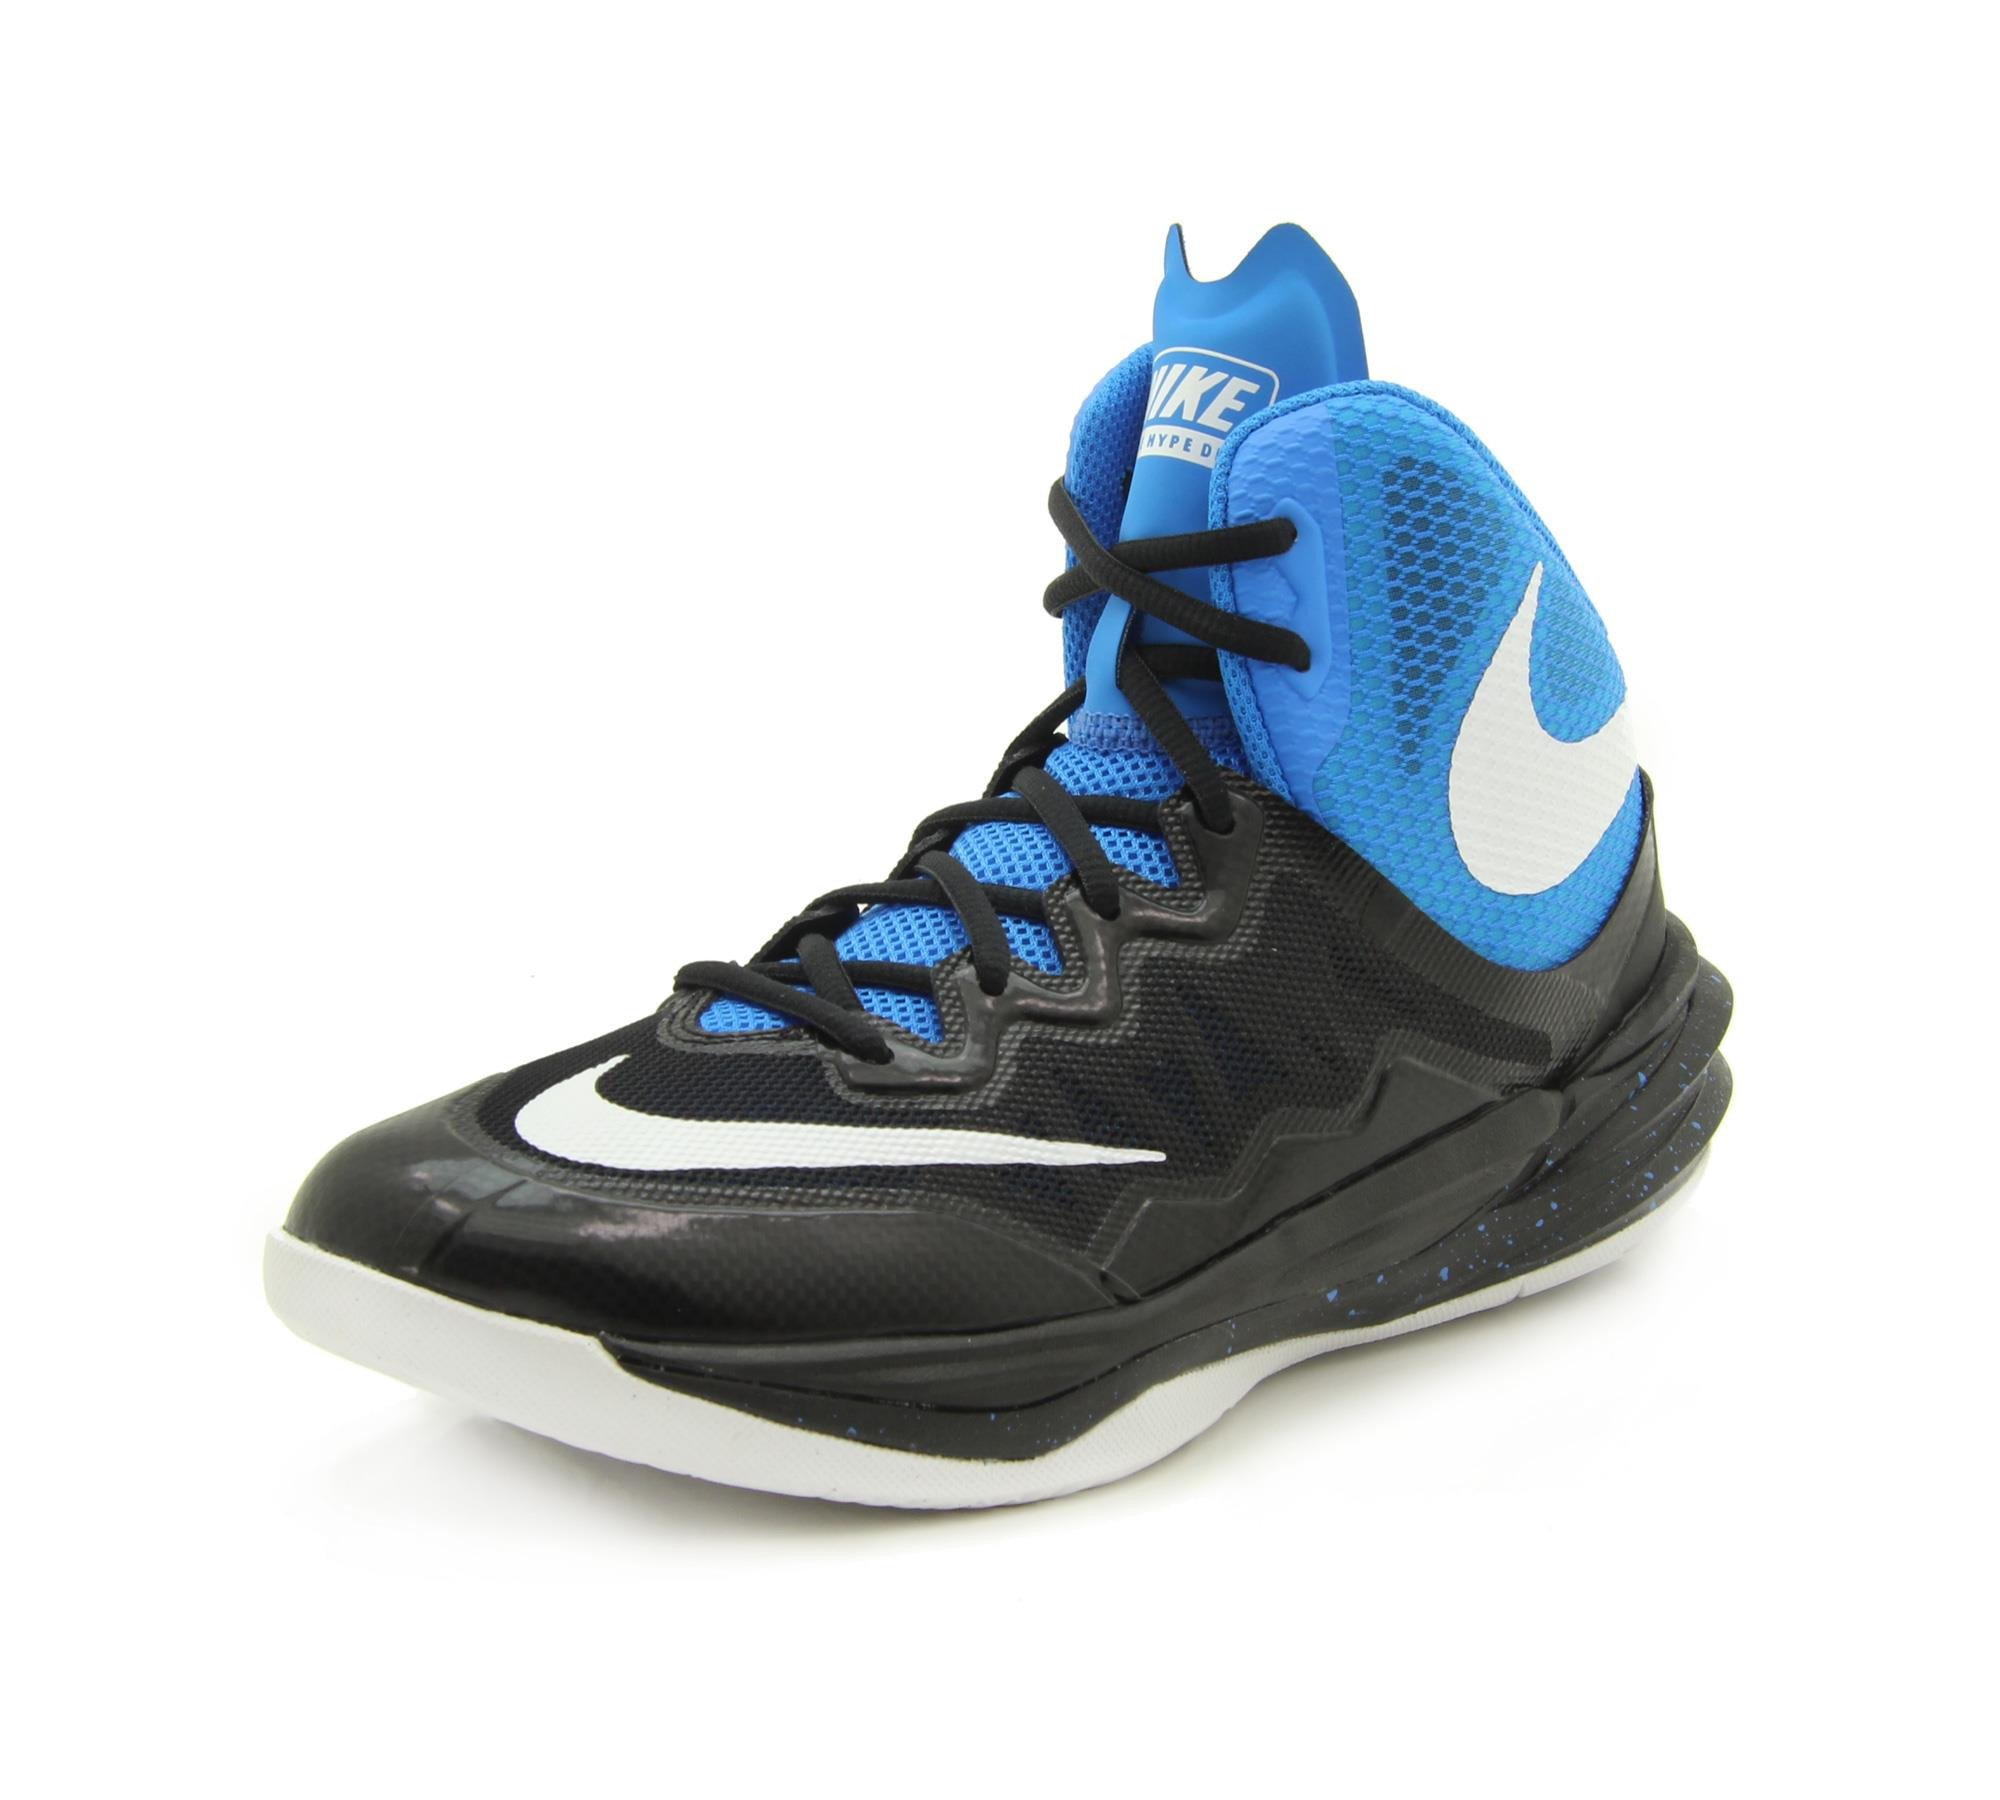 big sale c43f7 d383b Nike Prime Hype Df : Nike | Discounted Shoes & Trainers ...